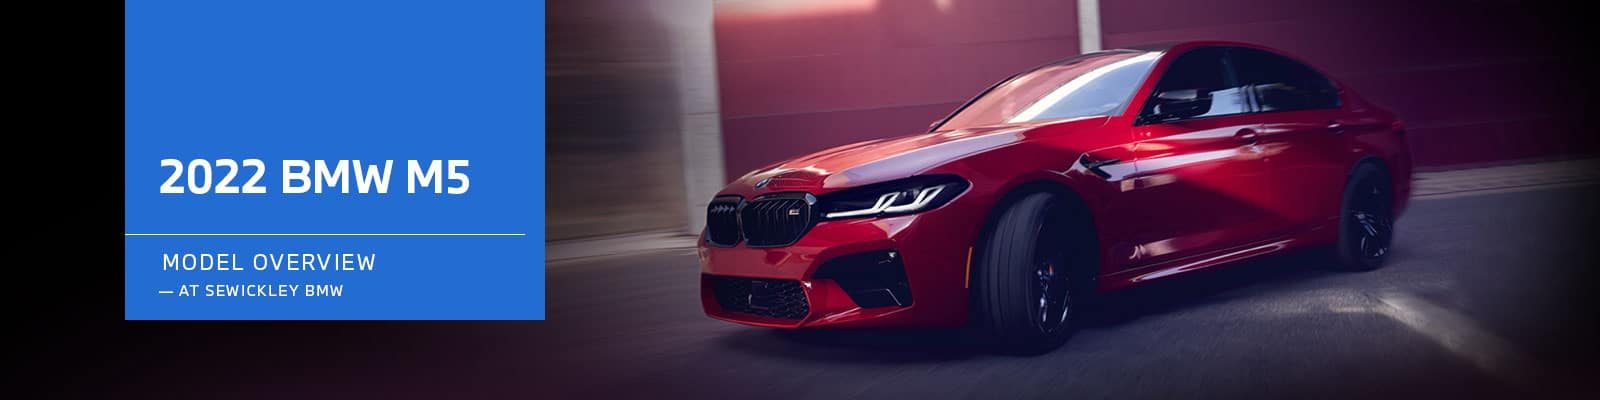 2022 BMW M5 Model Overview at Sewickley BMW